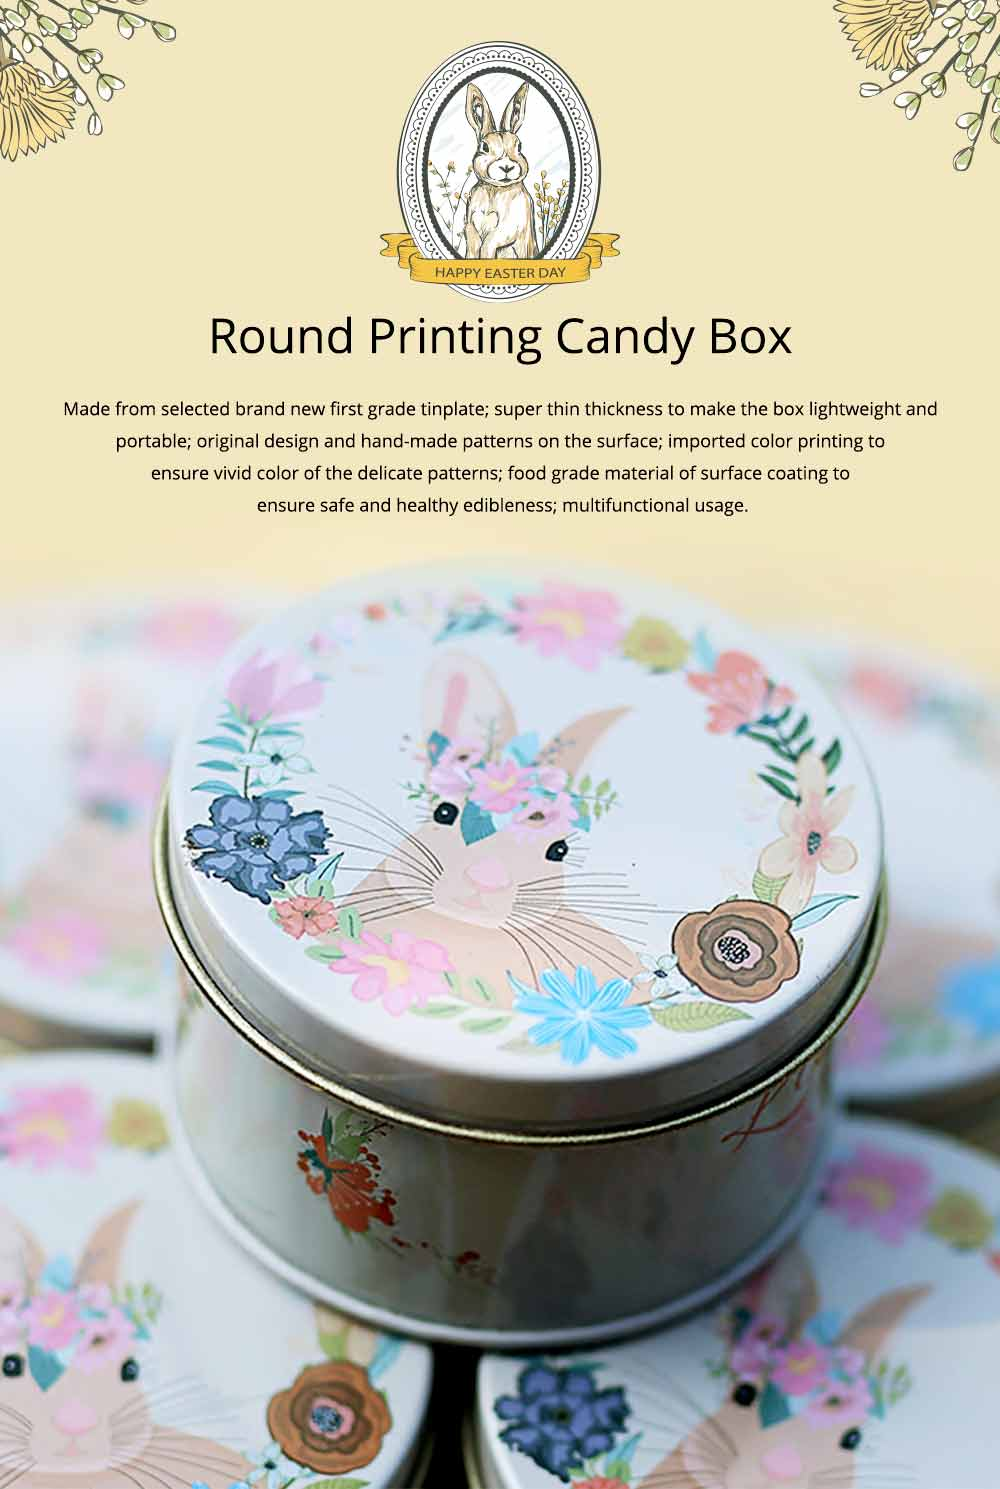 Round Tinplate Candy Box for Weddings, Creative Candy Box of Lovely Rabbit Printings Storage Box Bonbon Box Gift Box 0